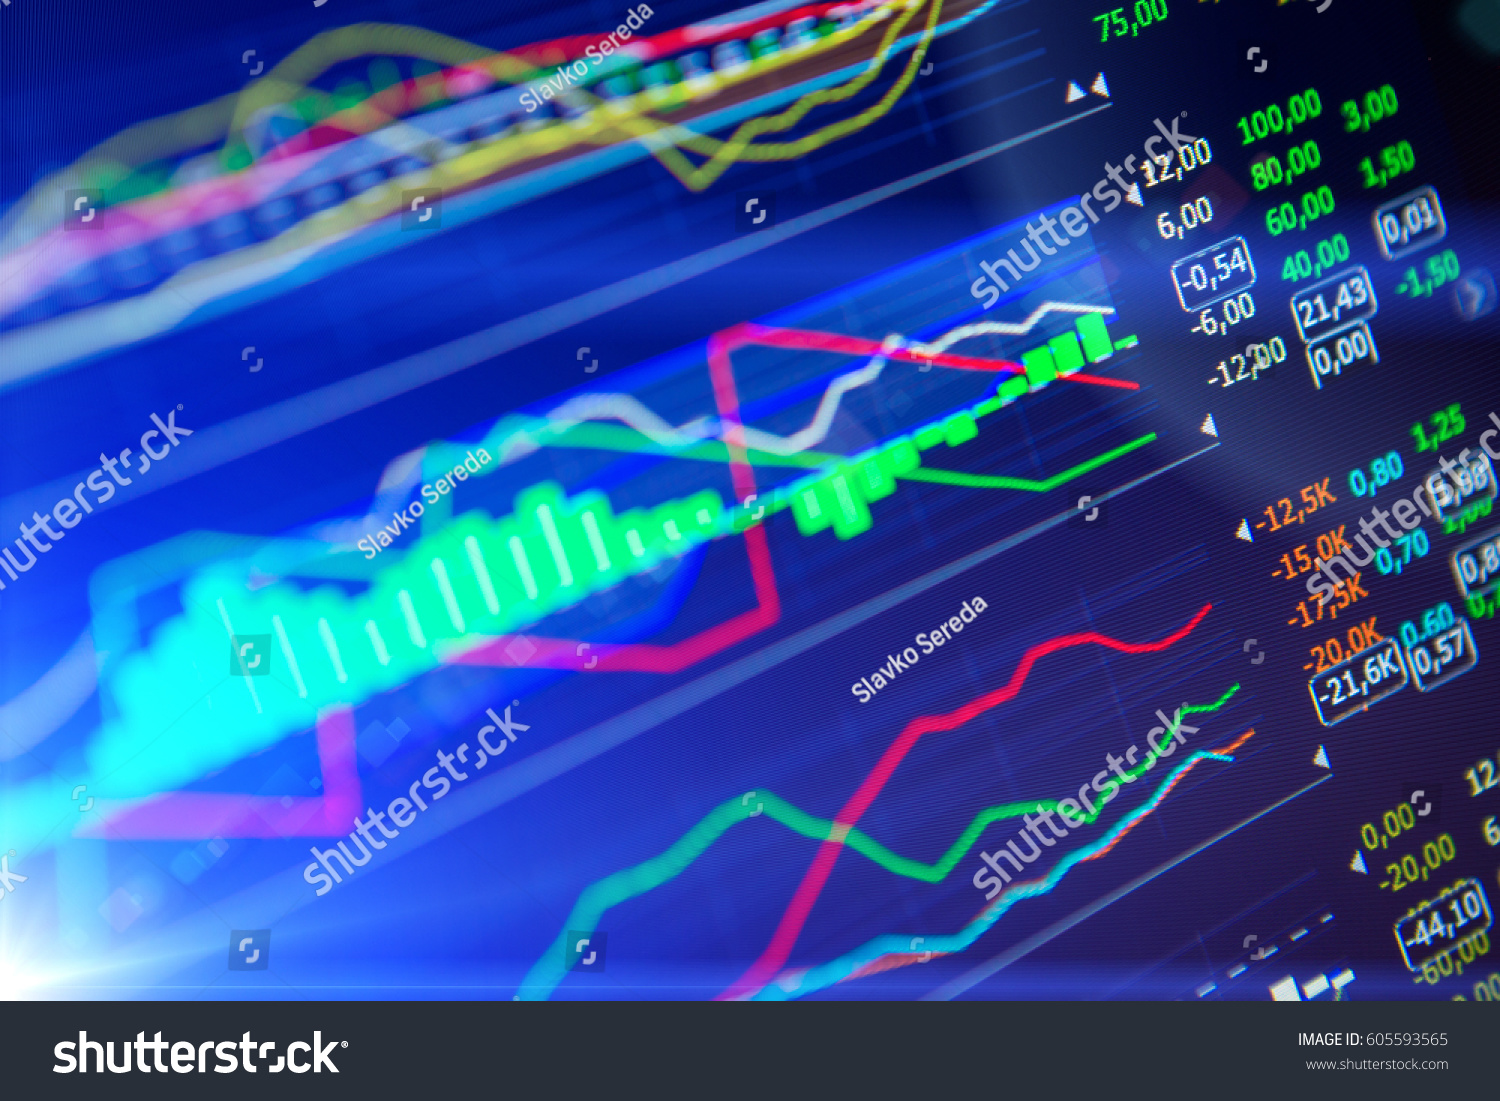 Forex Quotes Data Analyzing Forex Market Charts Quotes Stock Photo 605593565